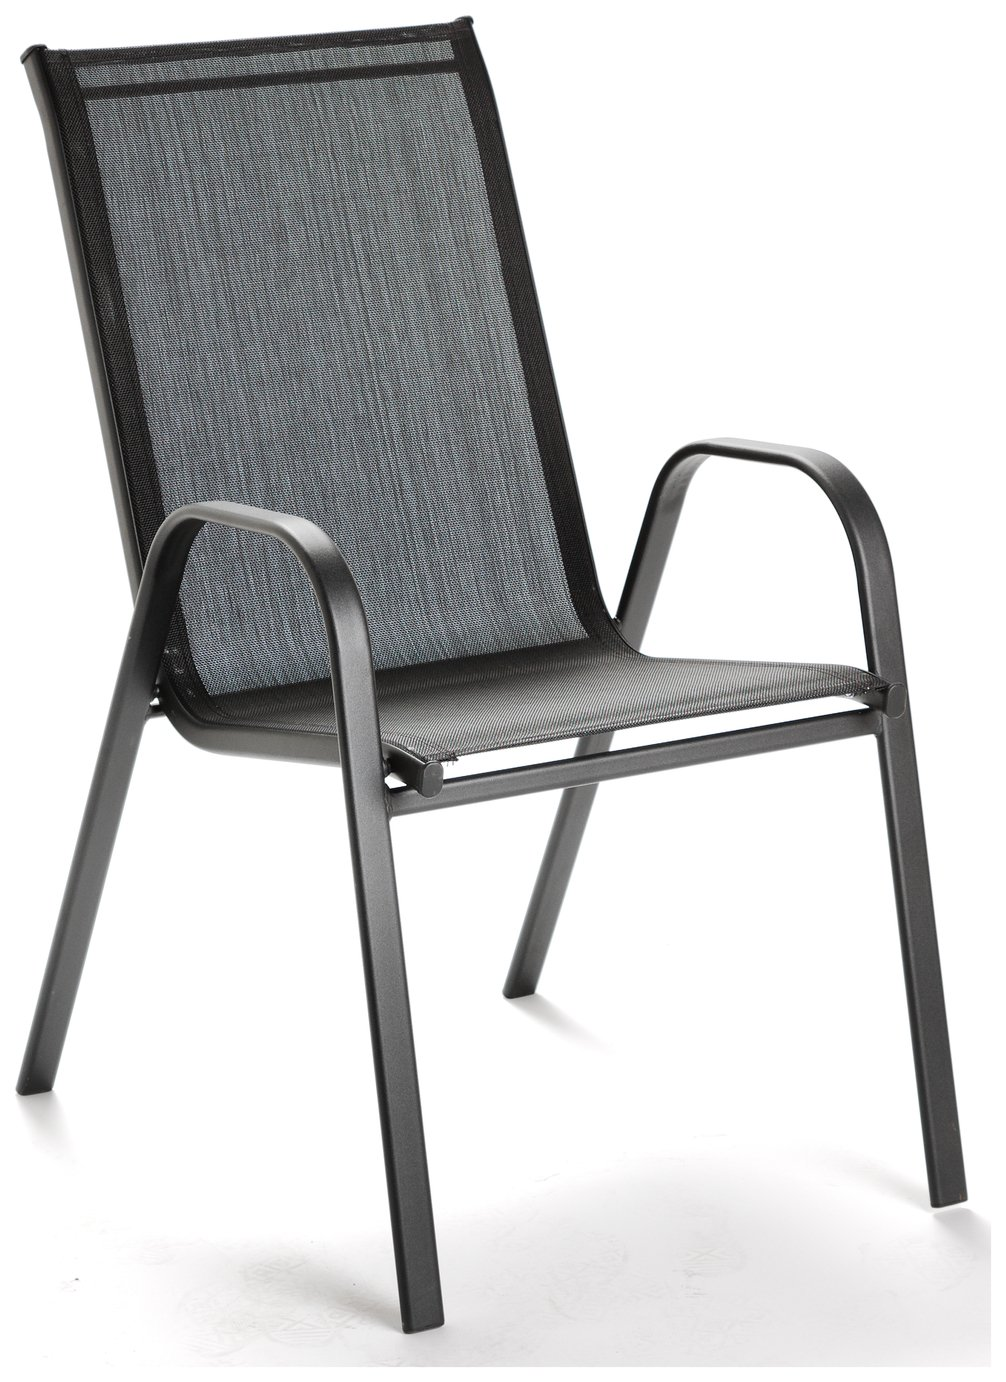 Garden Furniture Argos buy home sicily garden chairs - pack of 2 at argos.co.uk - your